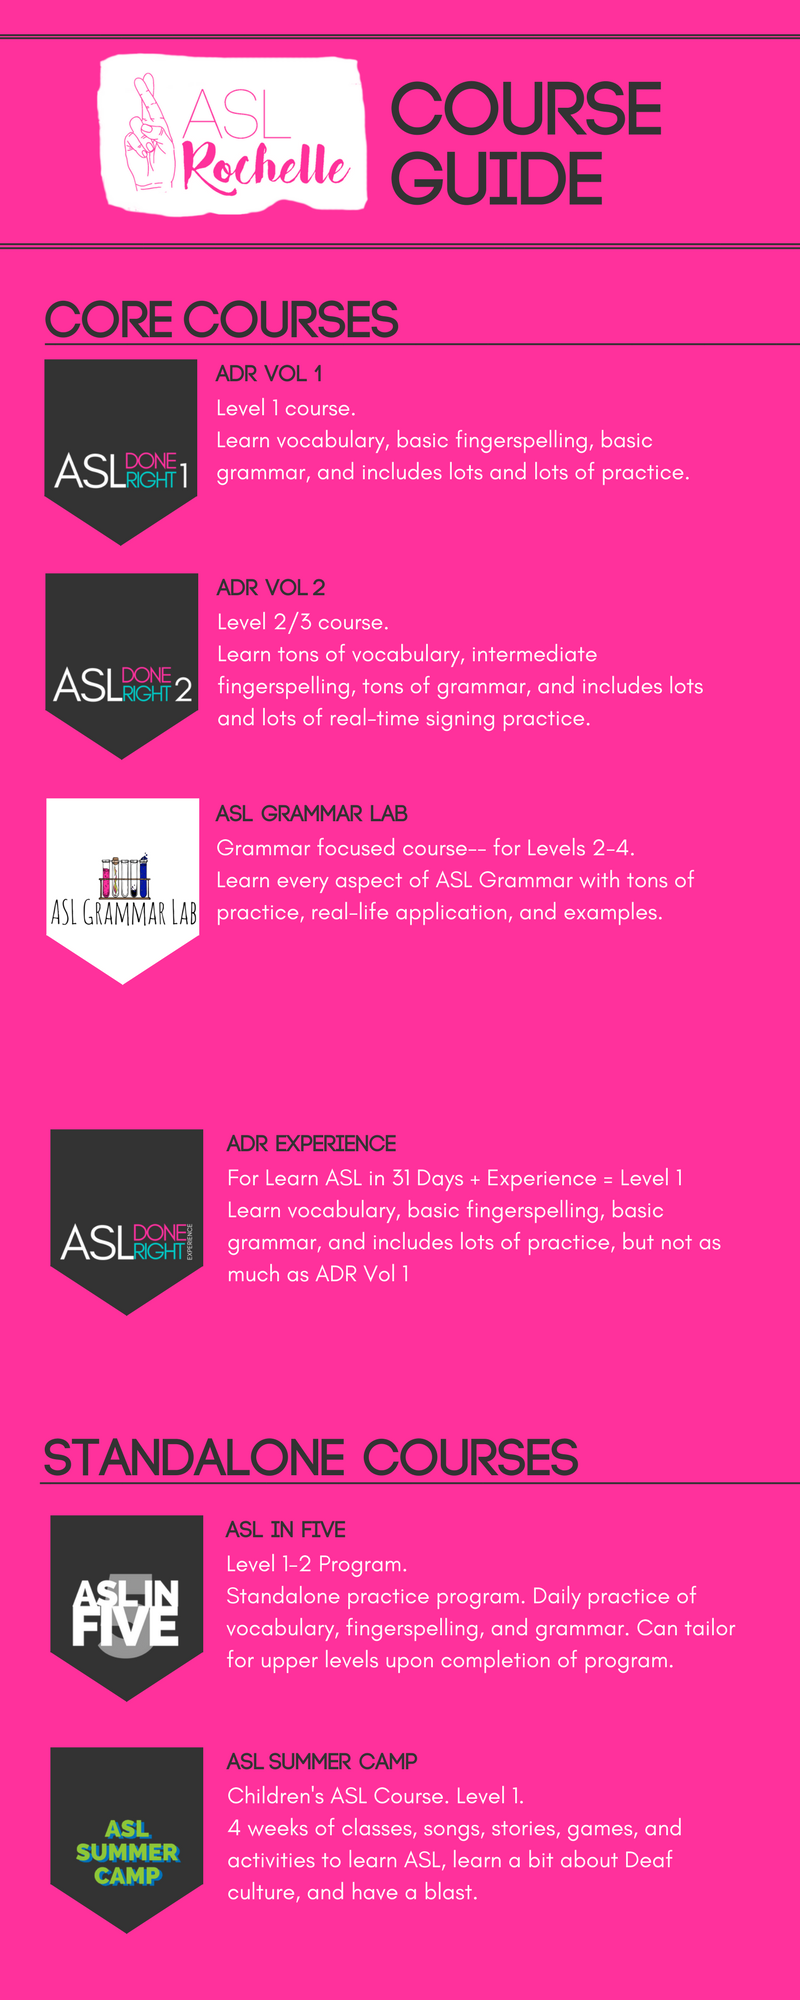 asl rochelle course guide.png